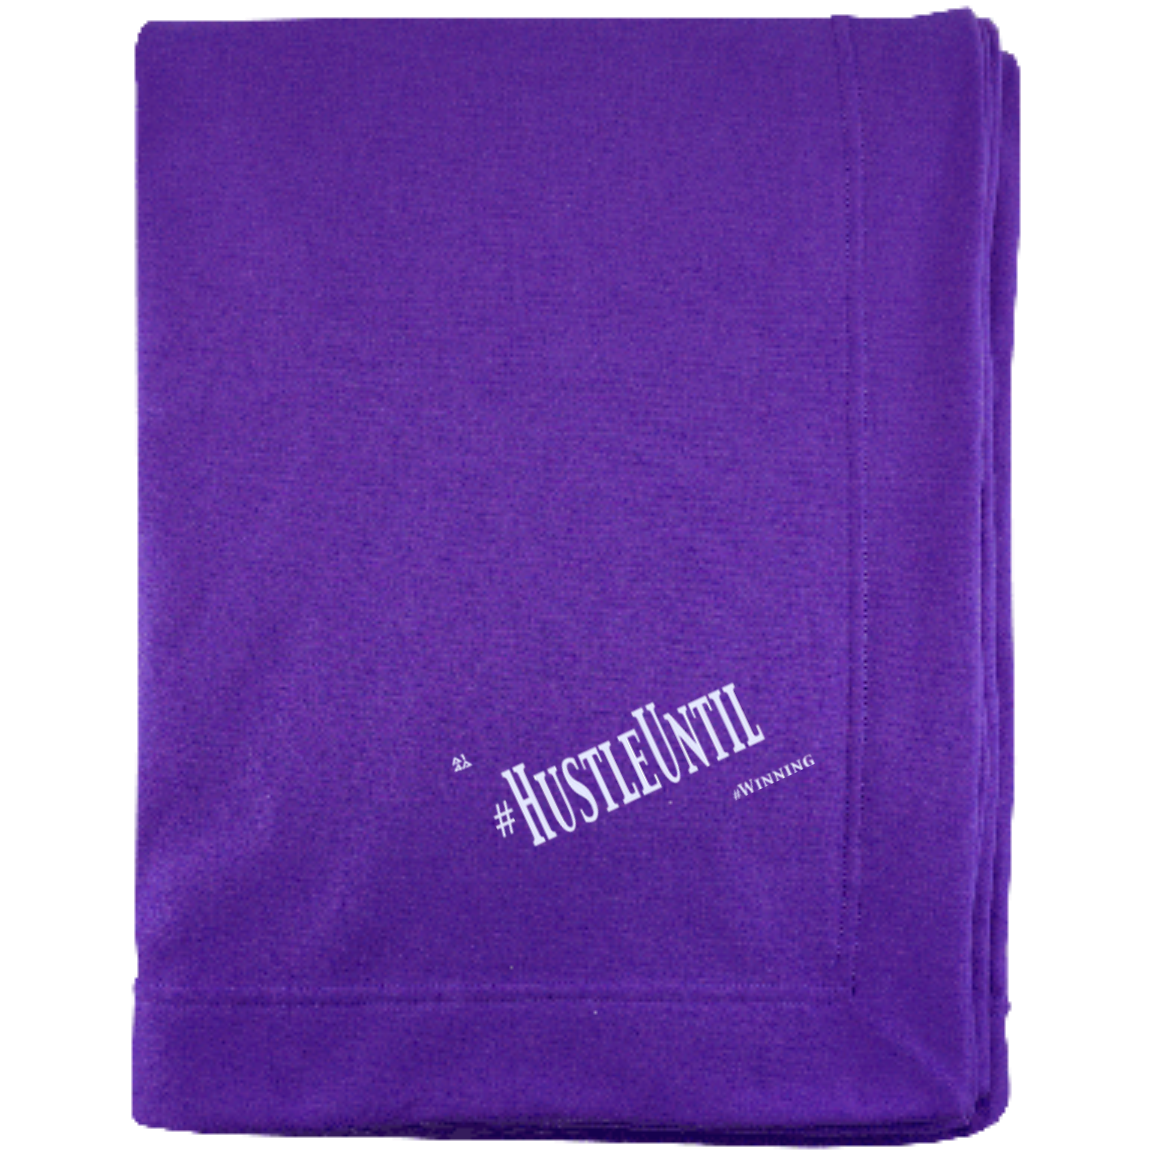 HUSTLE UNTIL - Gildan Sweatshirt Blanket